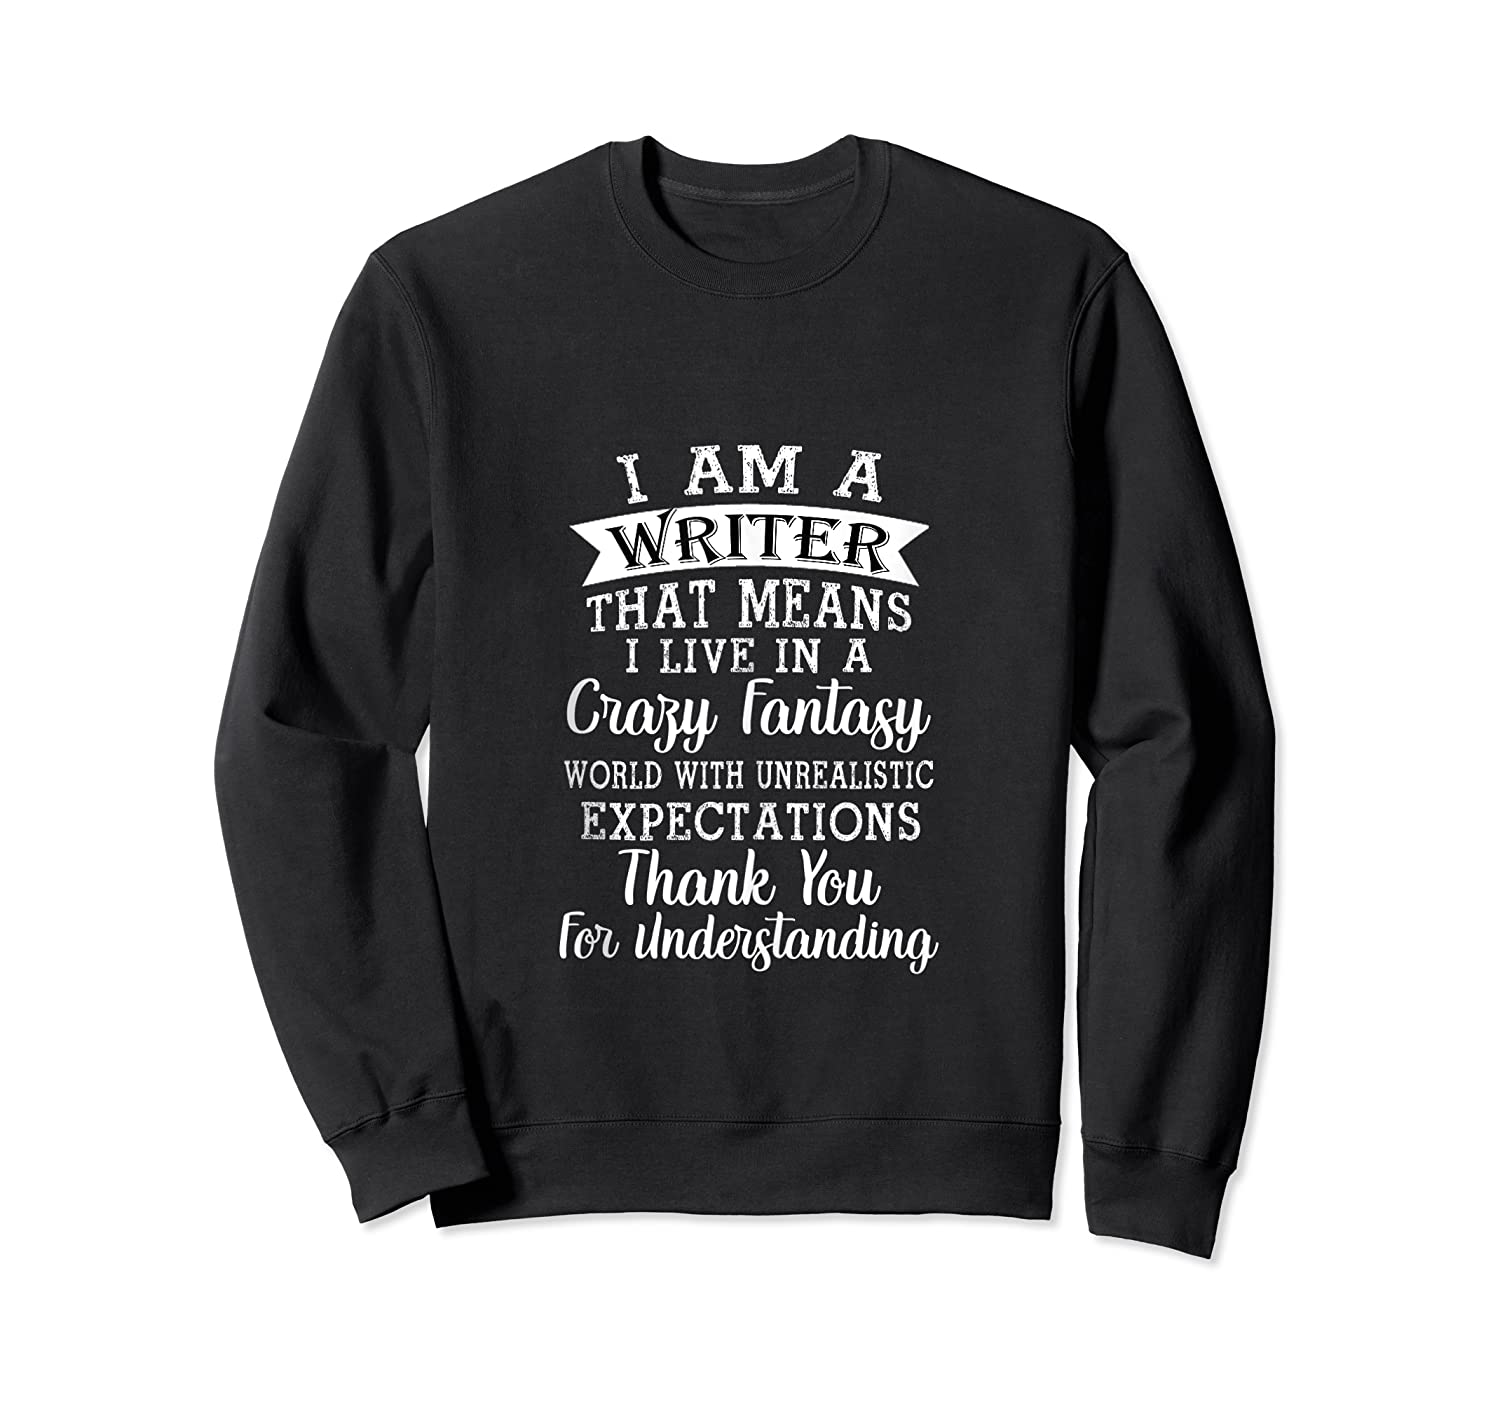 I M A Writer Gift For Authors Novelists Literature Funny Tank Top Shirts Crewneck Sweater